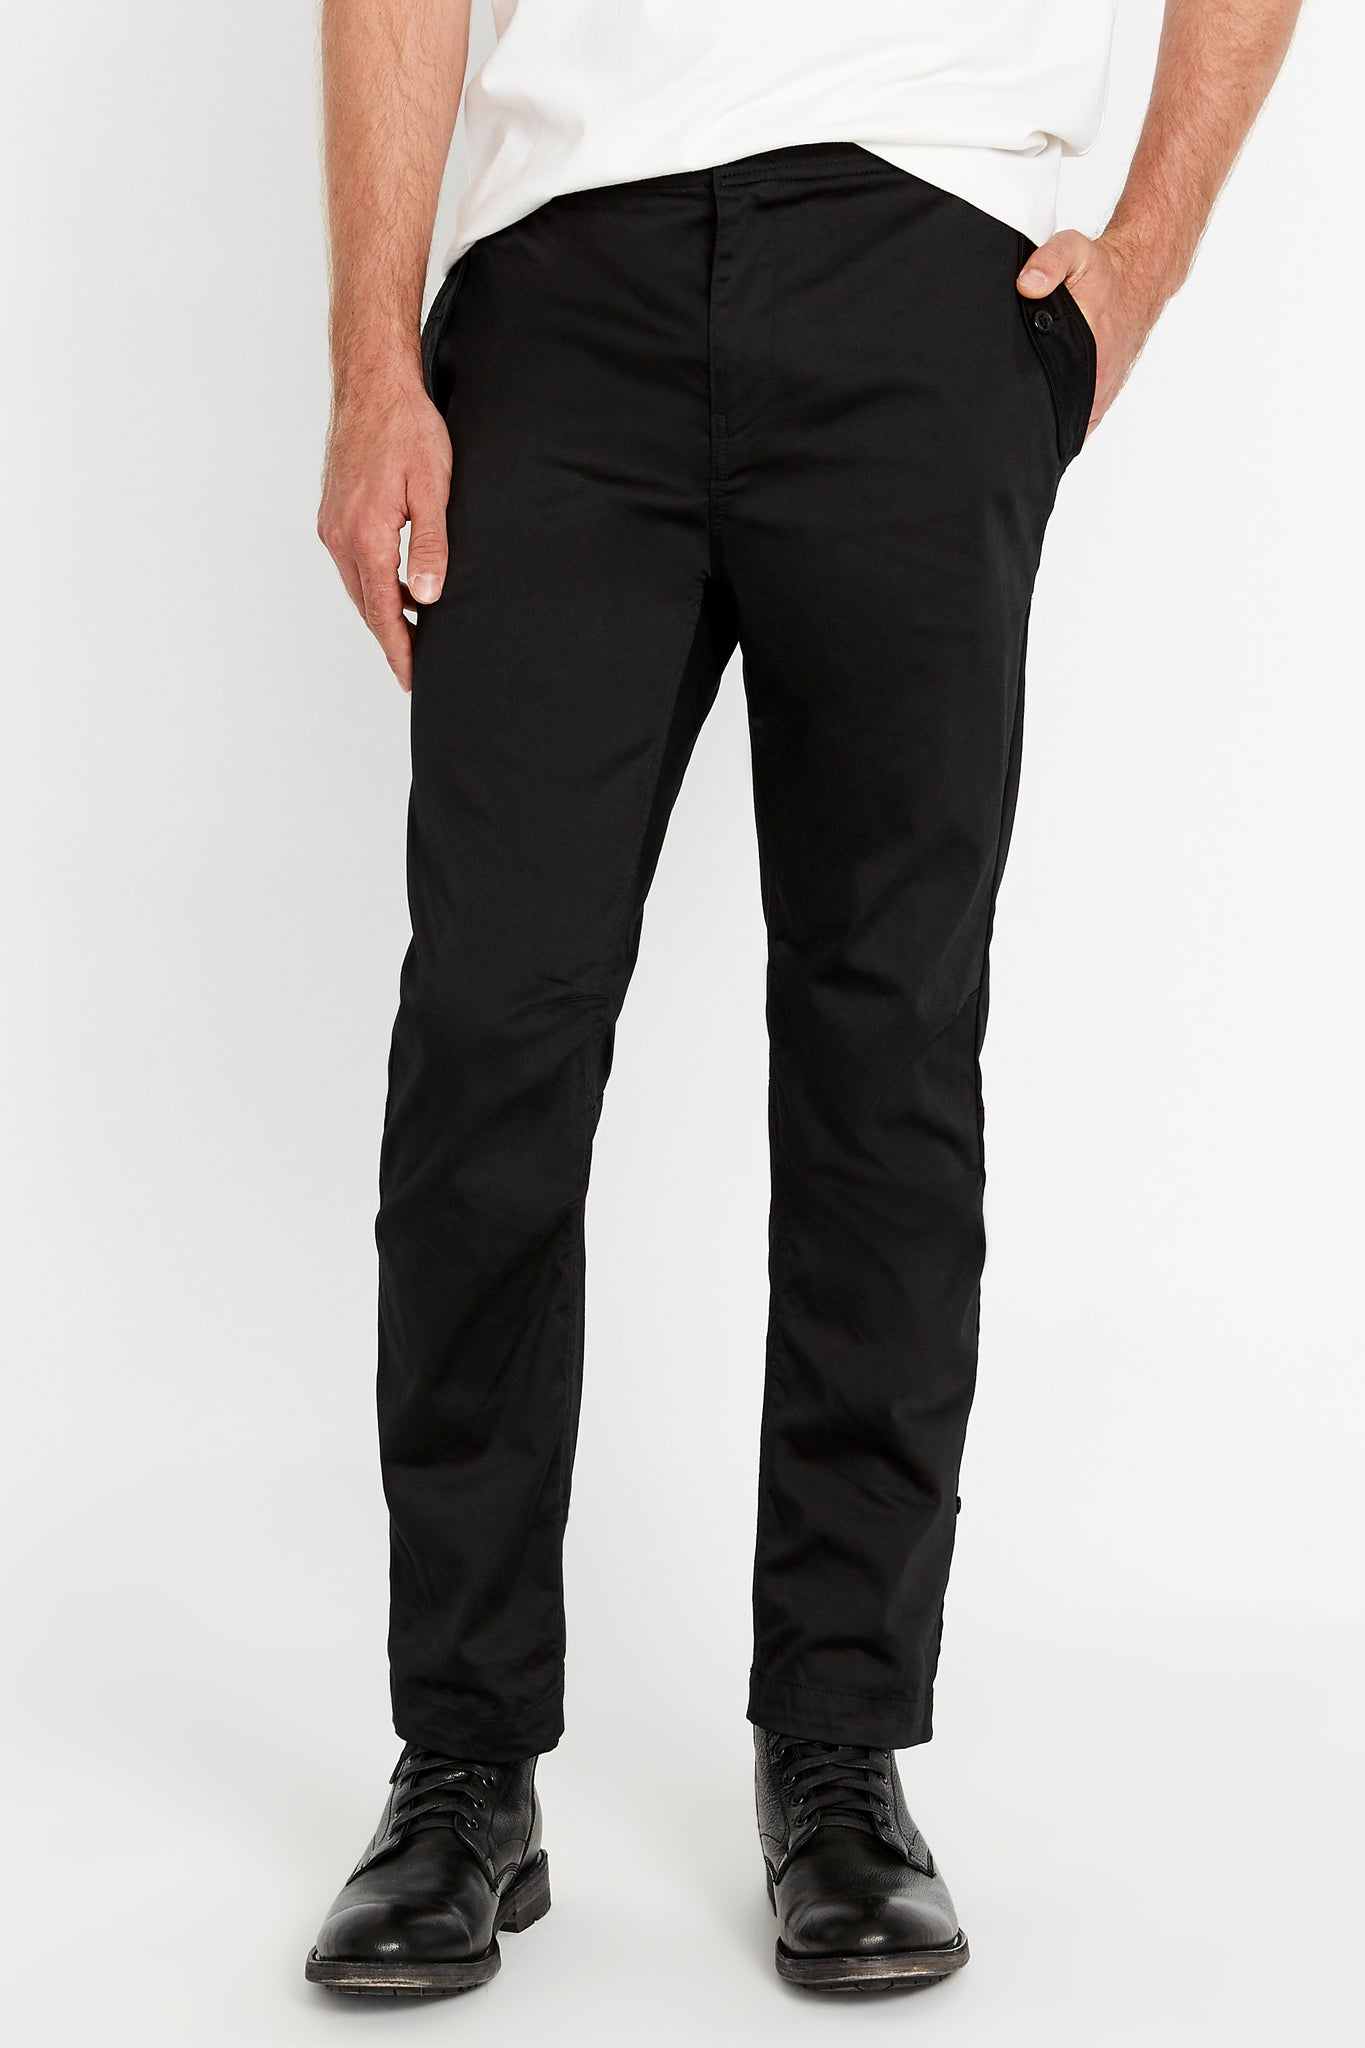 Front view of black pants with rolled up hem and pockets on both sides